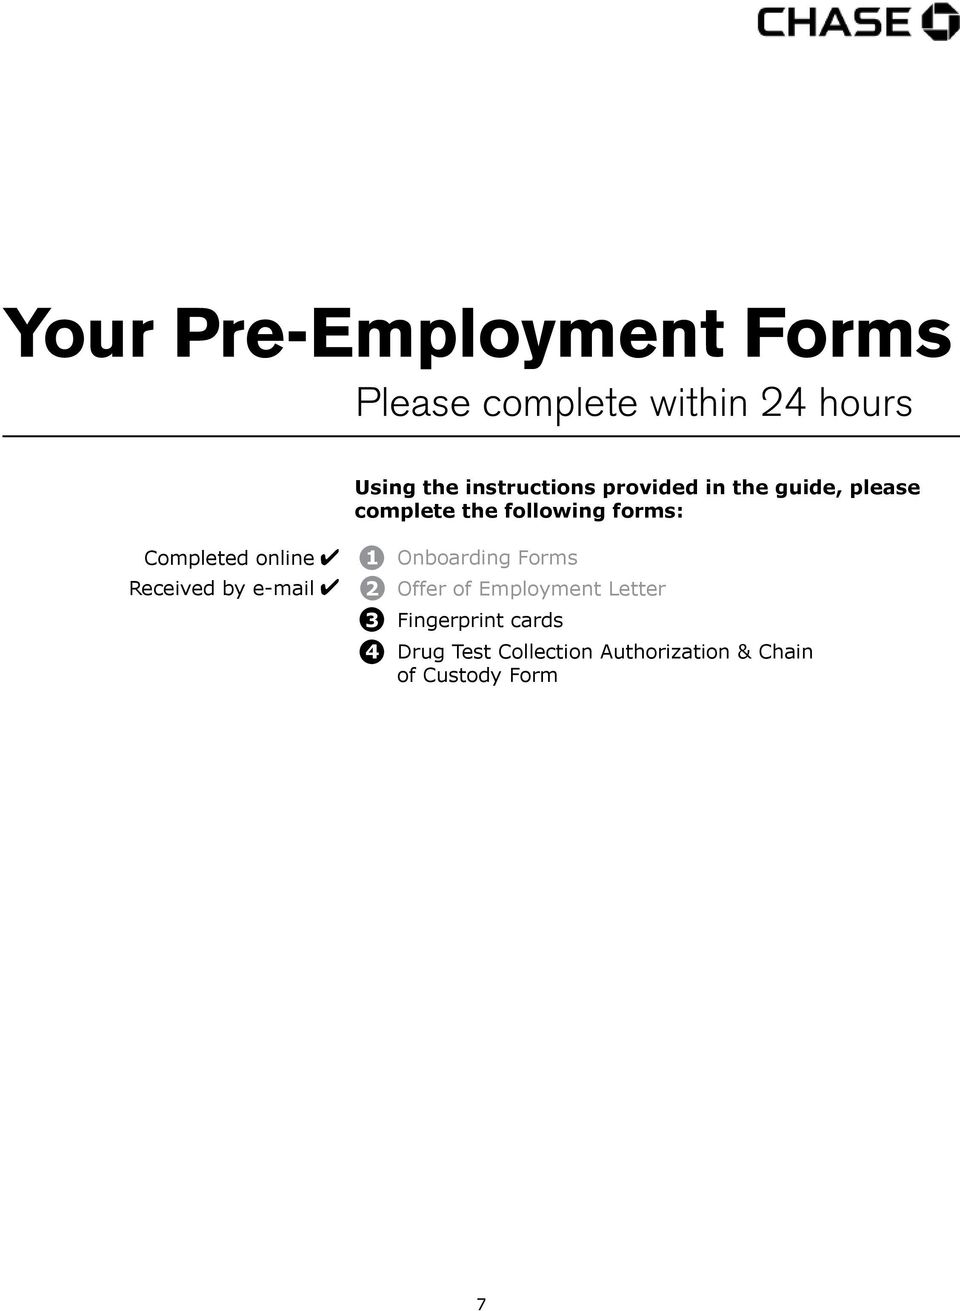 Welcome to Chase! Your Guide to the Pre-Employment Process - PDF